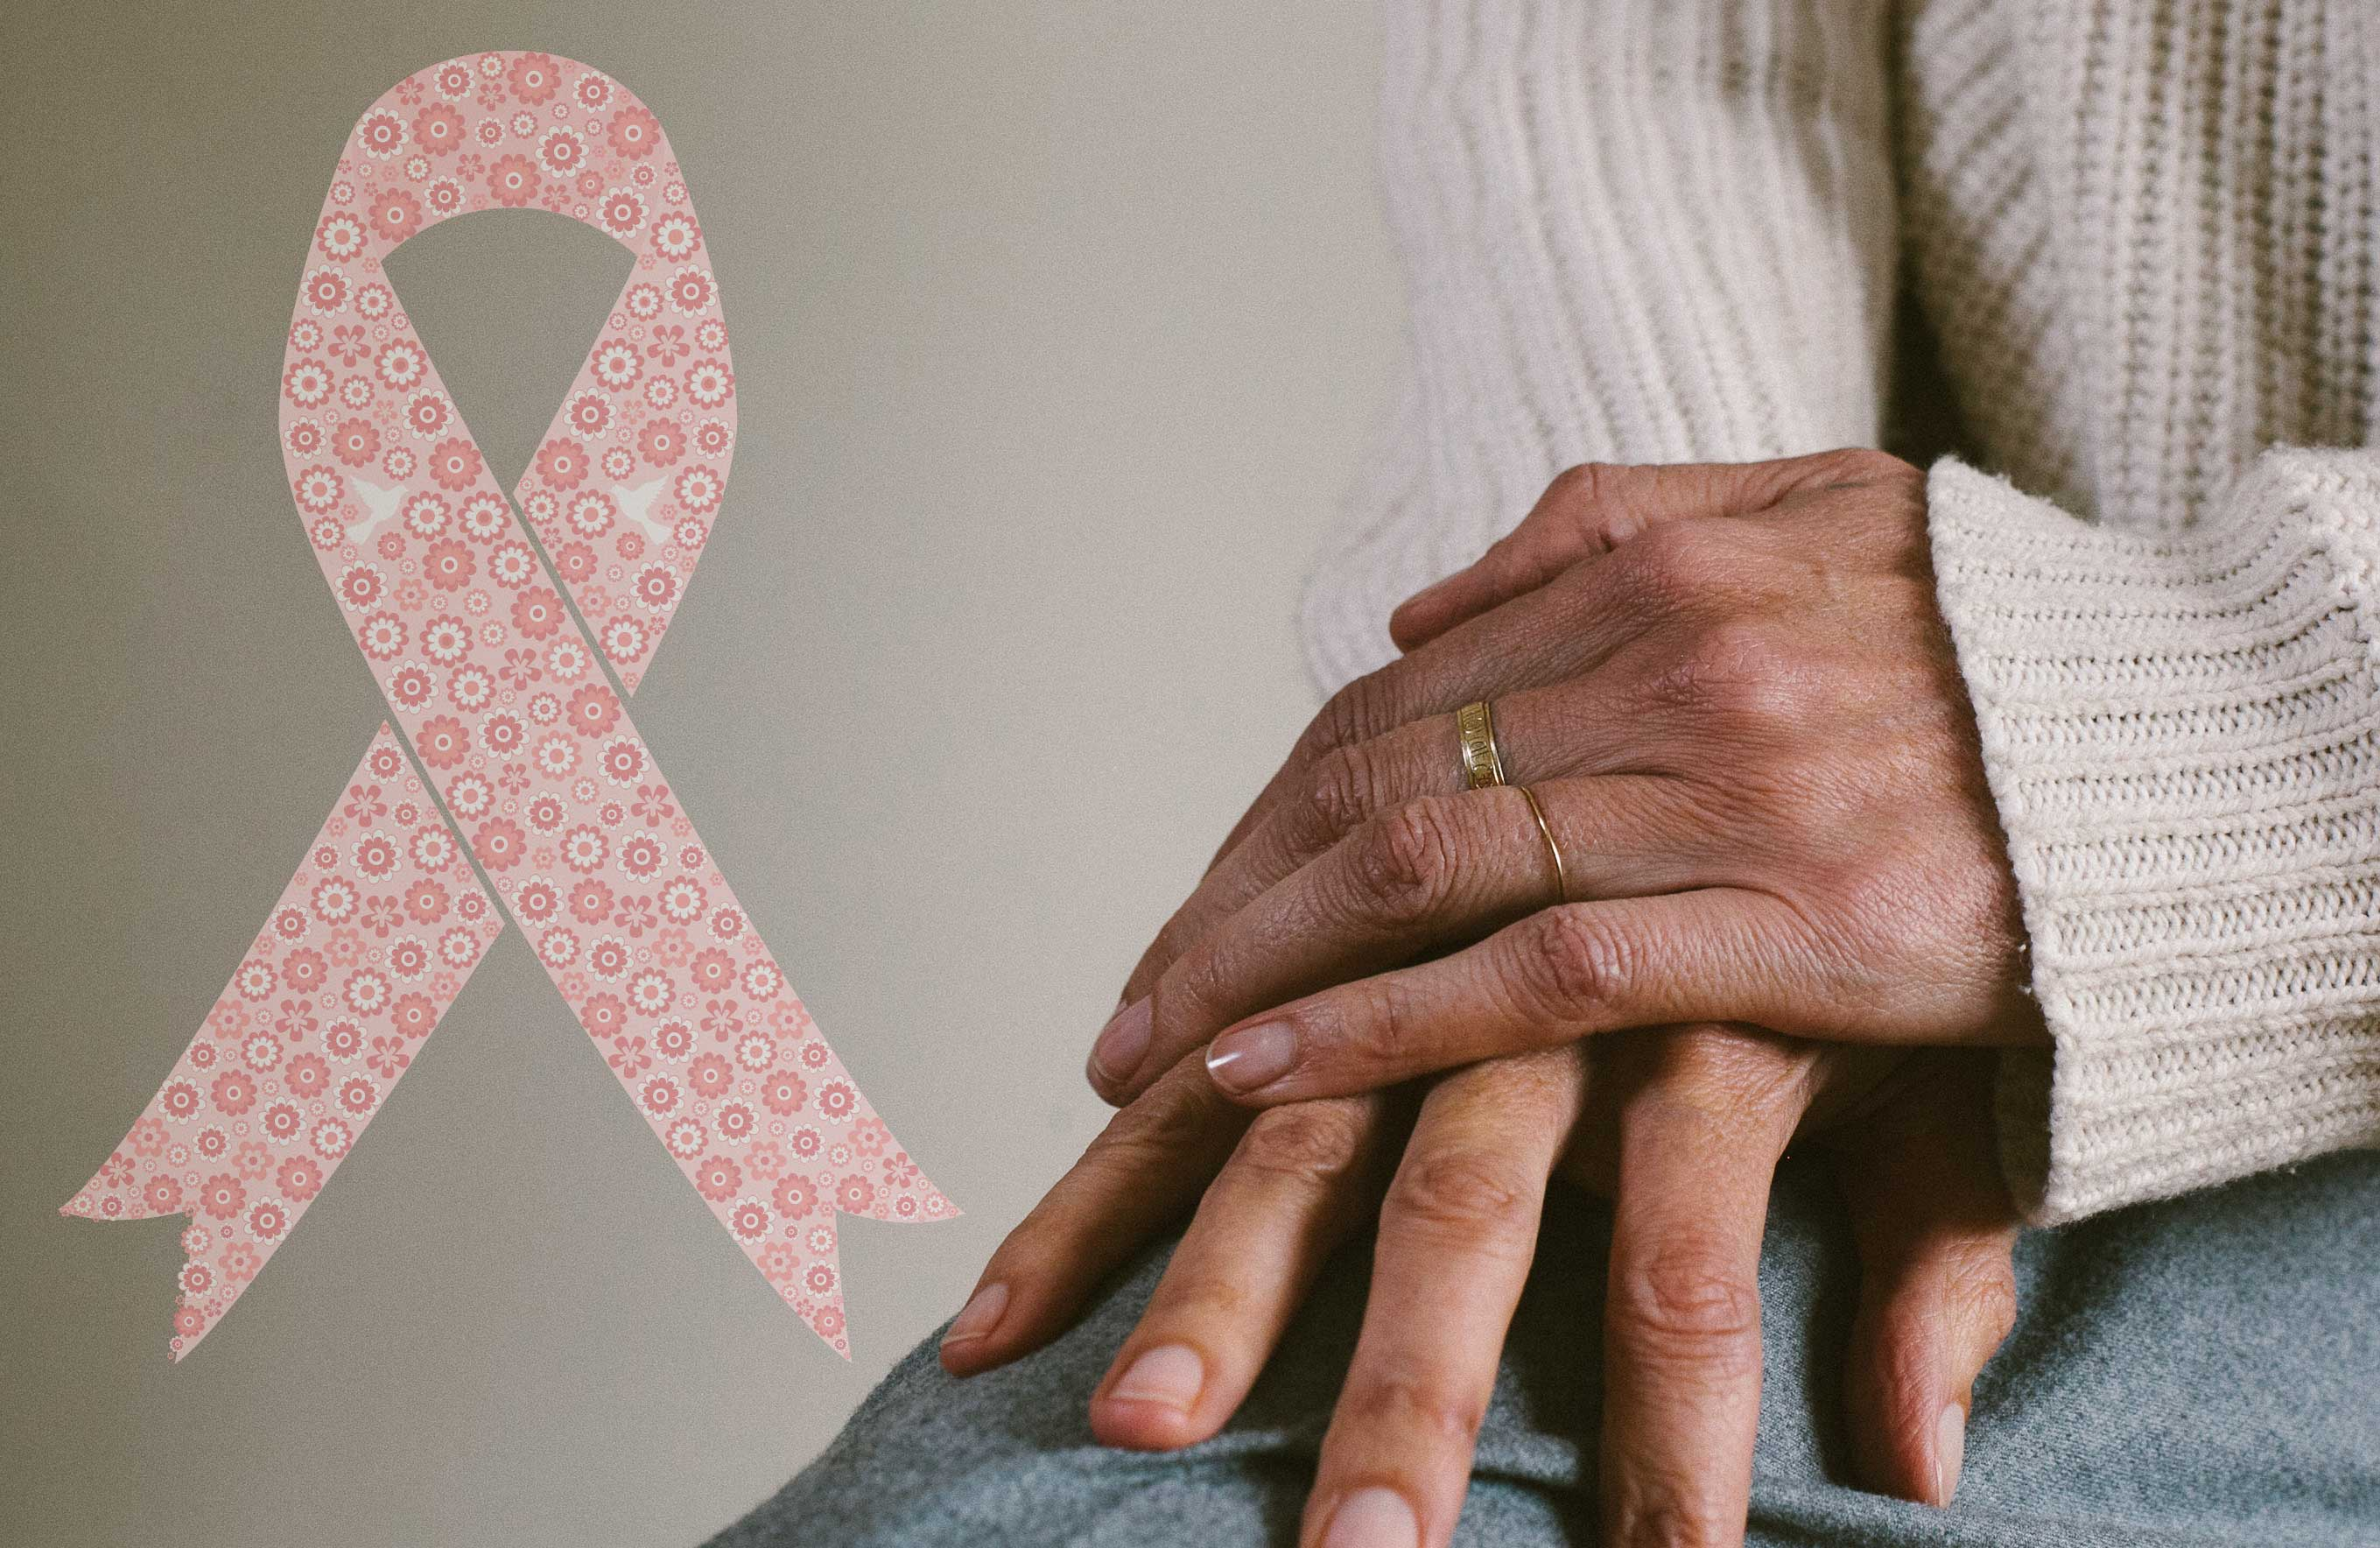 10 tips for Facing Breast Cancer